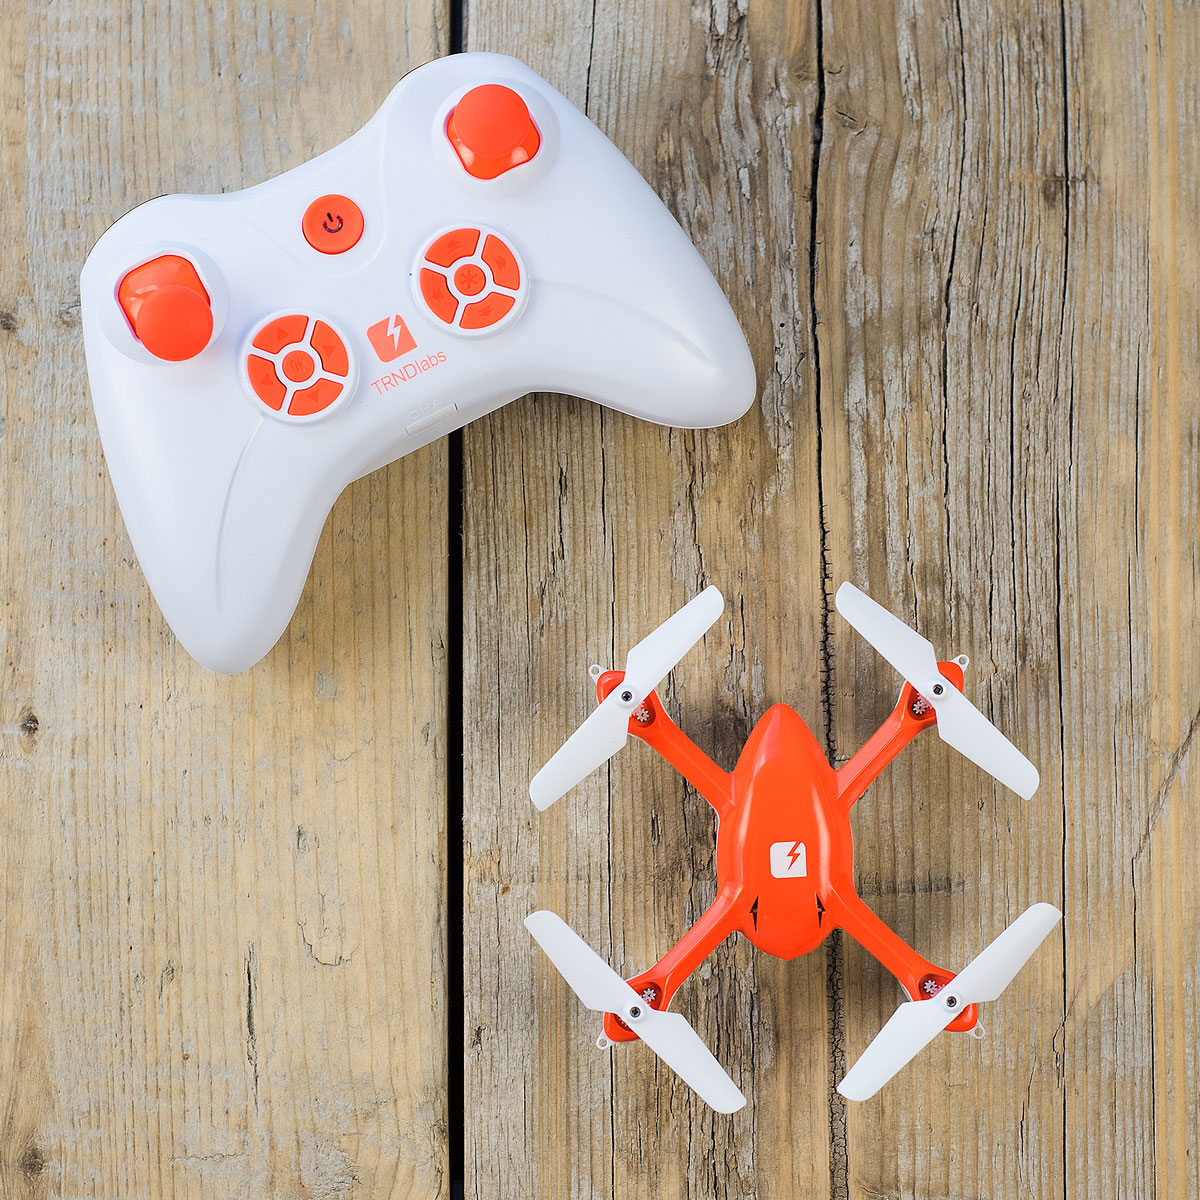 GearDiary The SKEYE Mini Drone by TRNDlabs is 4 Times the Excitement!